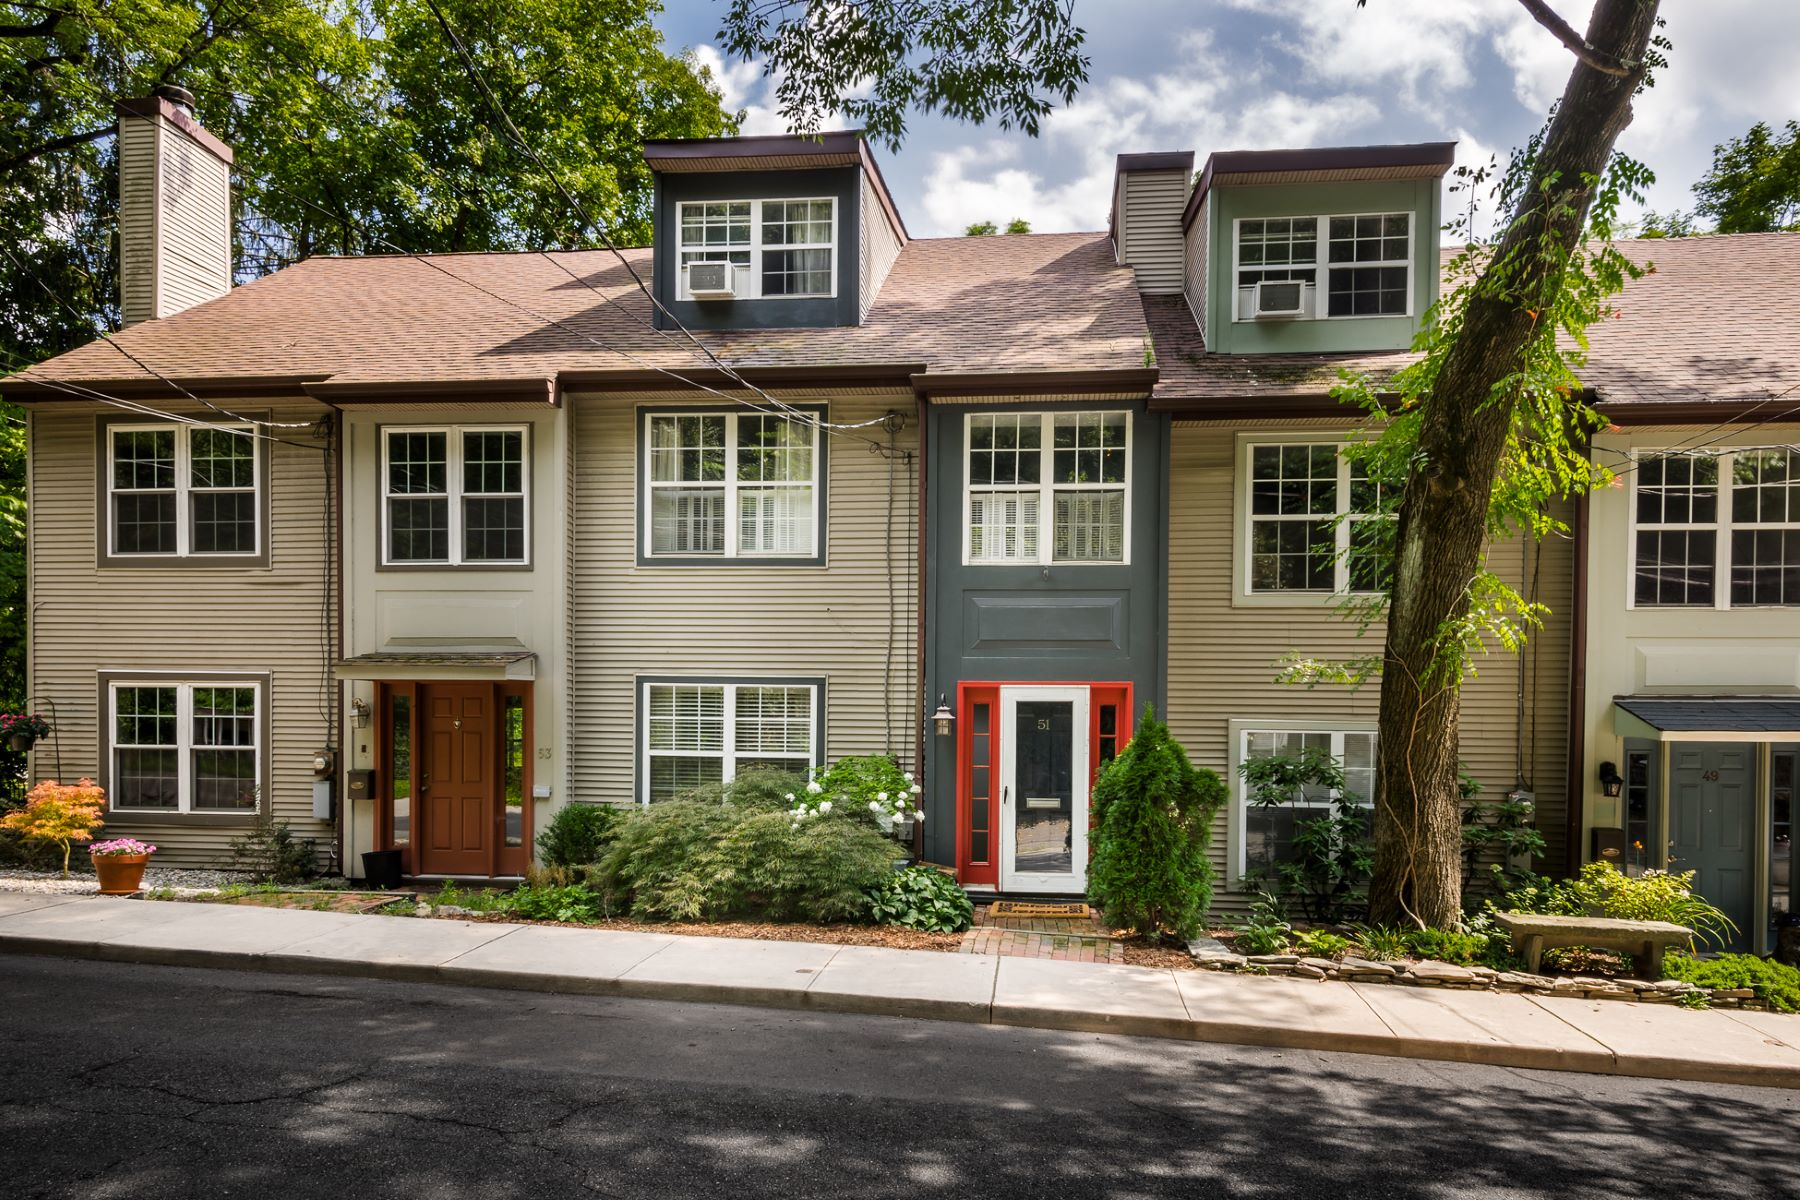 Townhouse for Sale at Townhome Living Minus The Association Fees 51 Quarry Street Lambertville, New Jersey, 08530 United StatesIn/Around: Lambertville